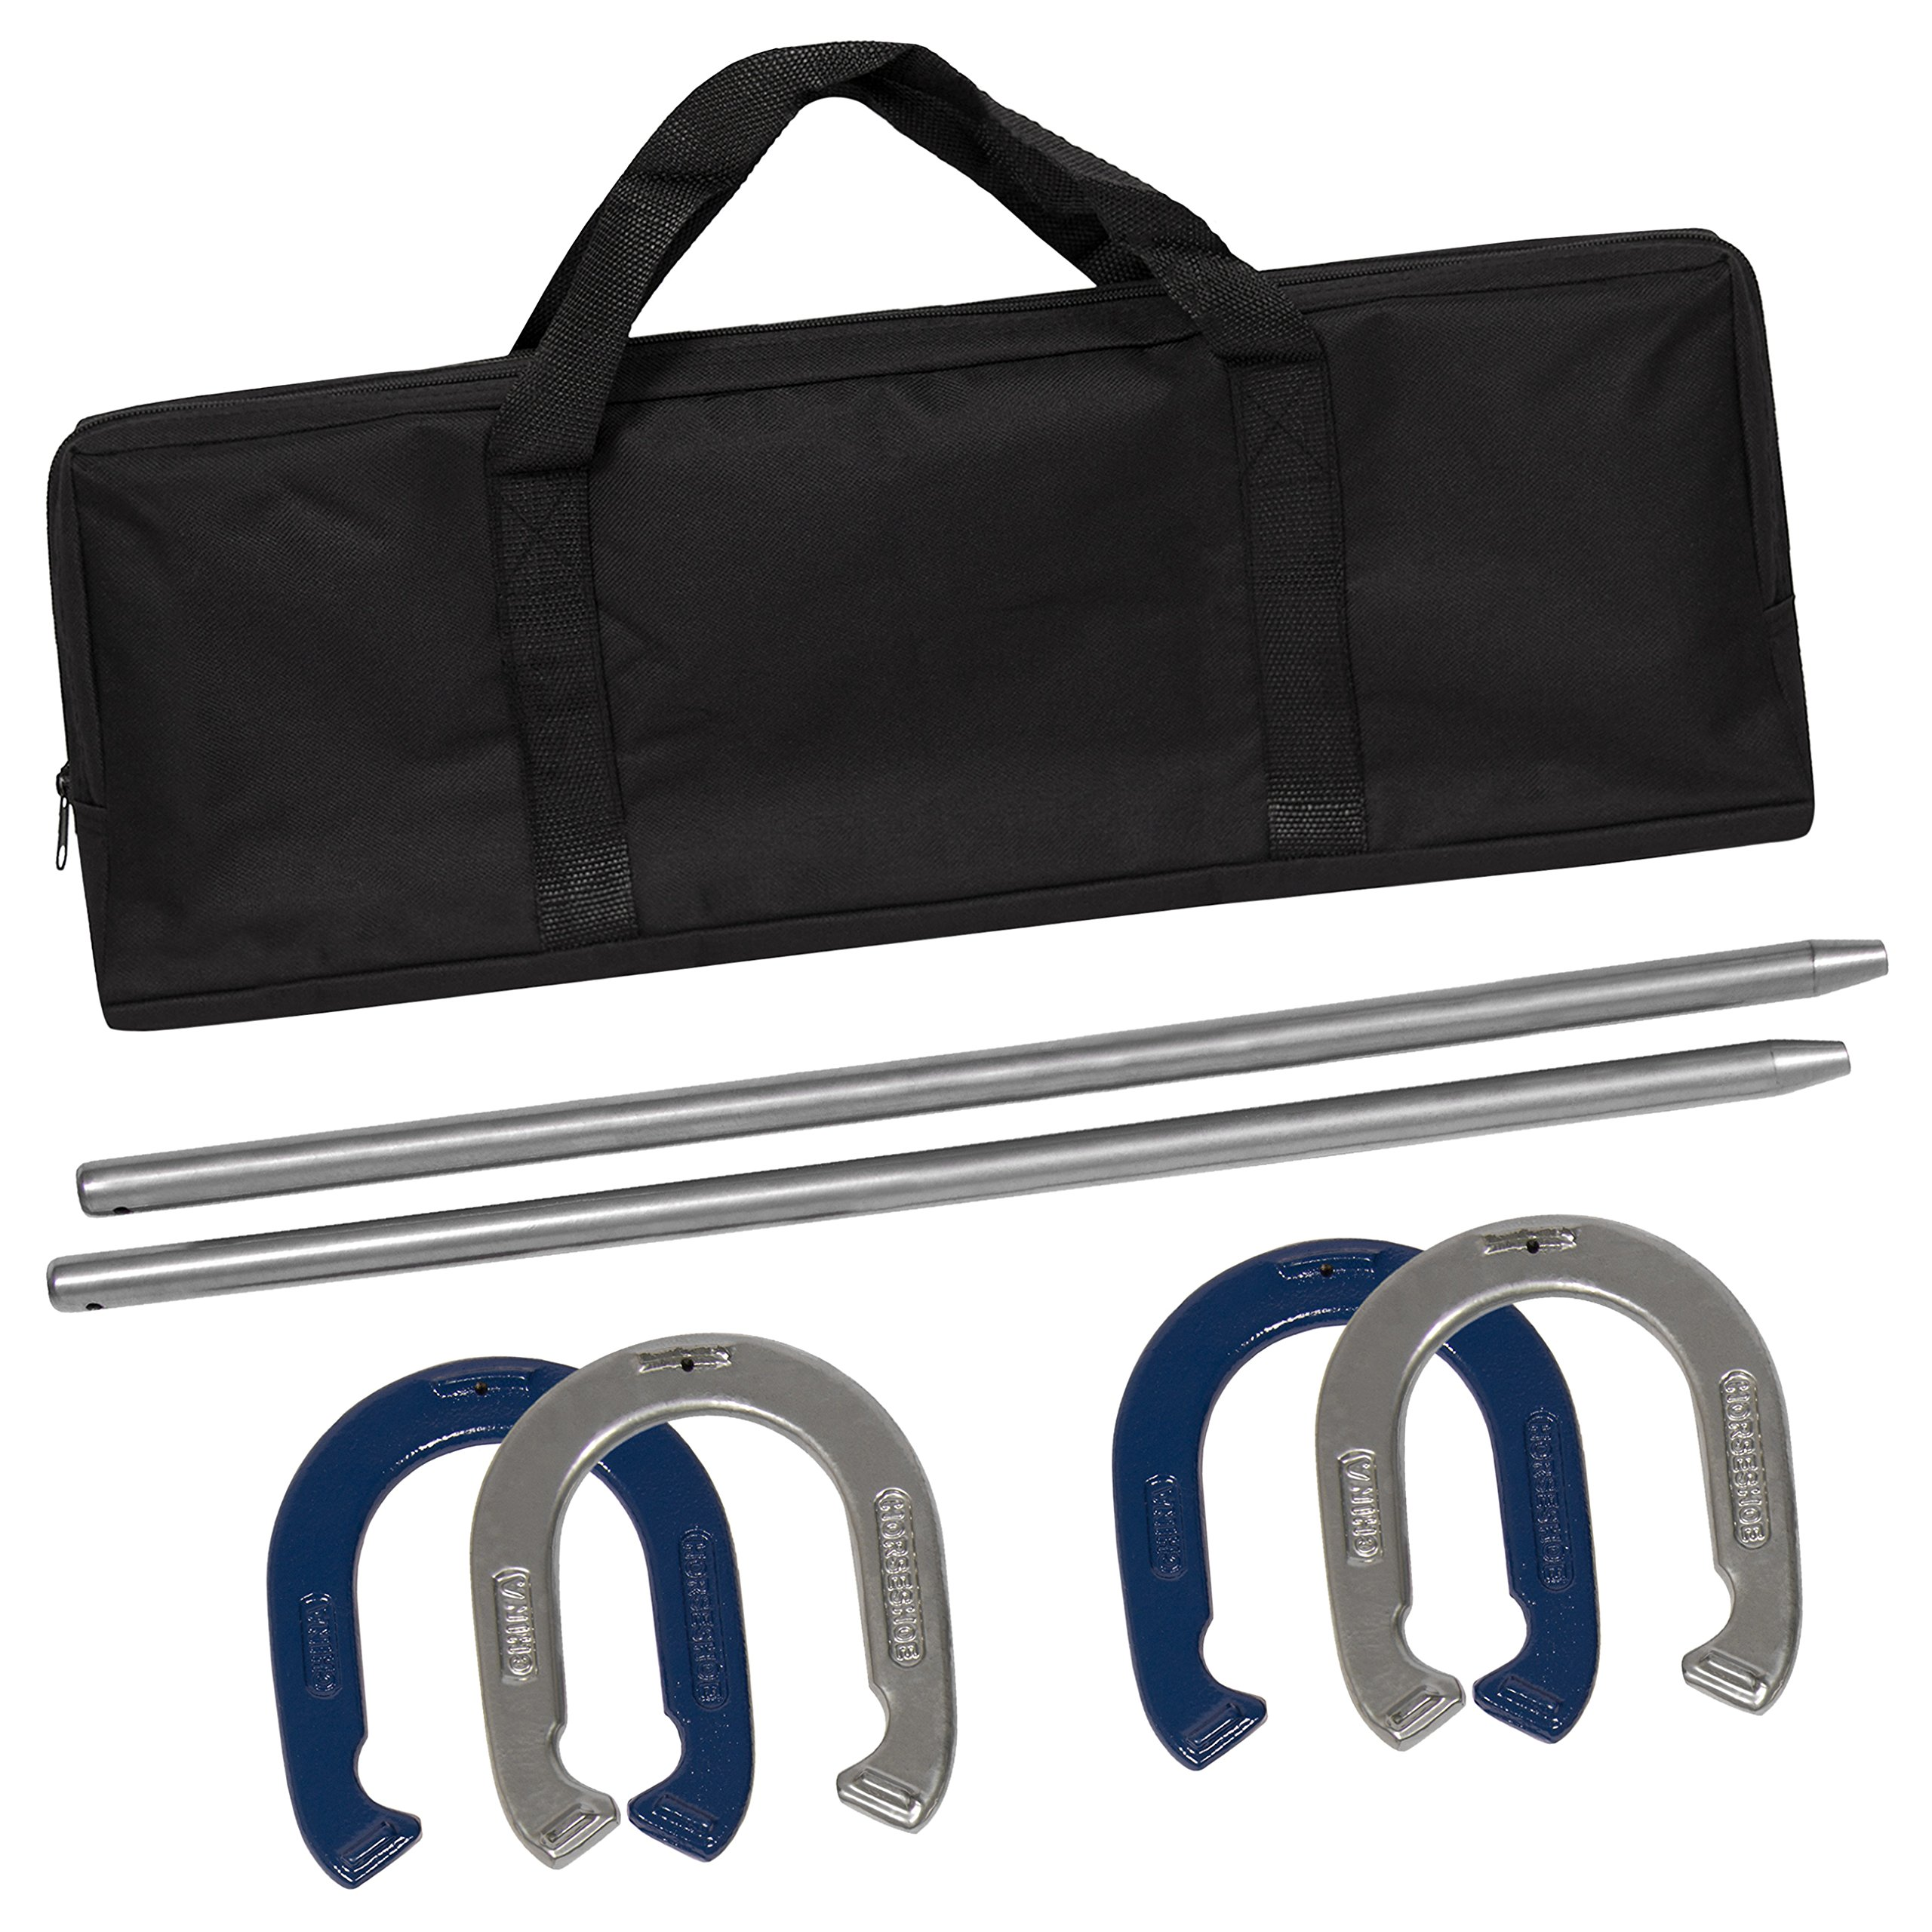 Best Choice Products Powder Coated Steel Horseshoe Game Set W/ Carrying Case by Best Choice Products